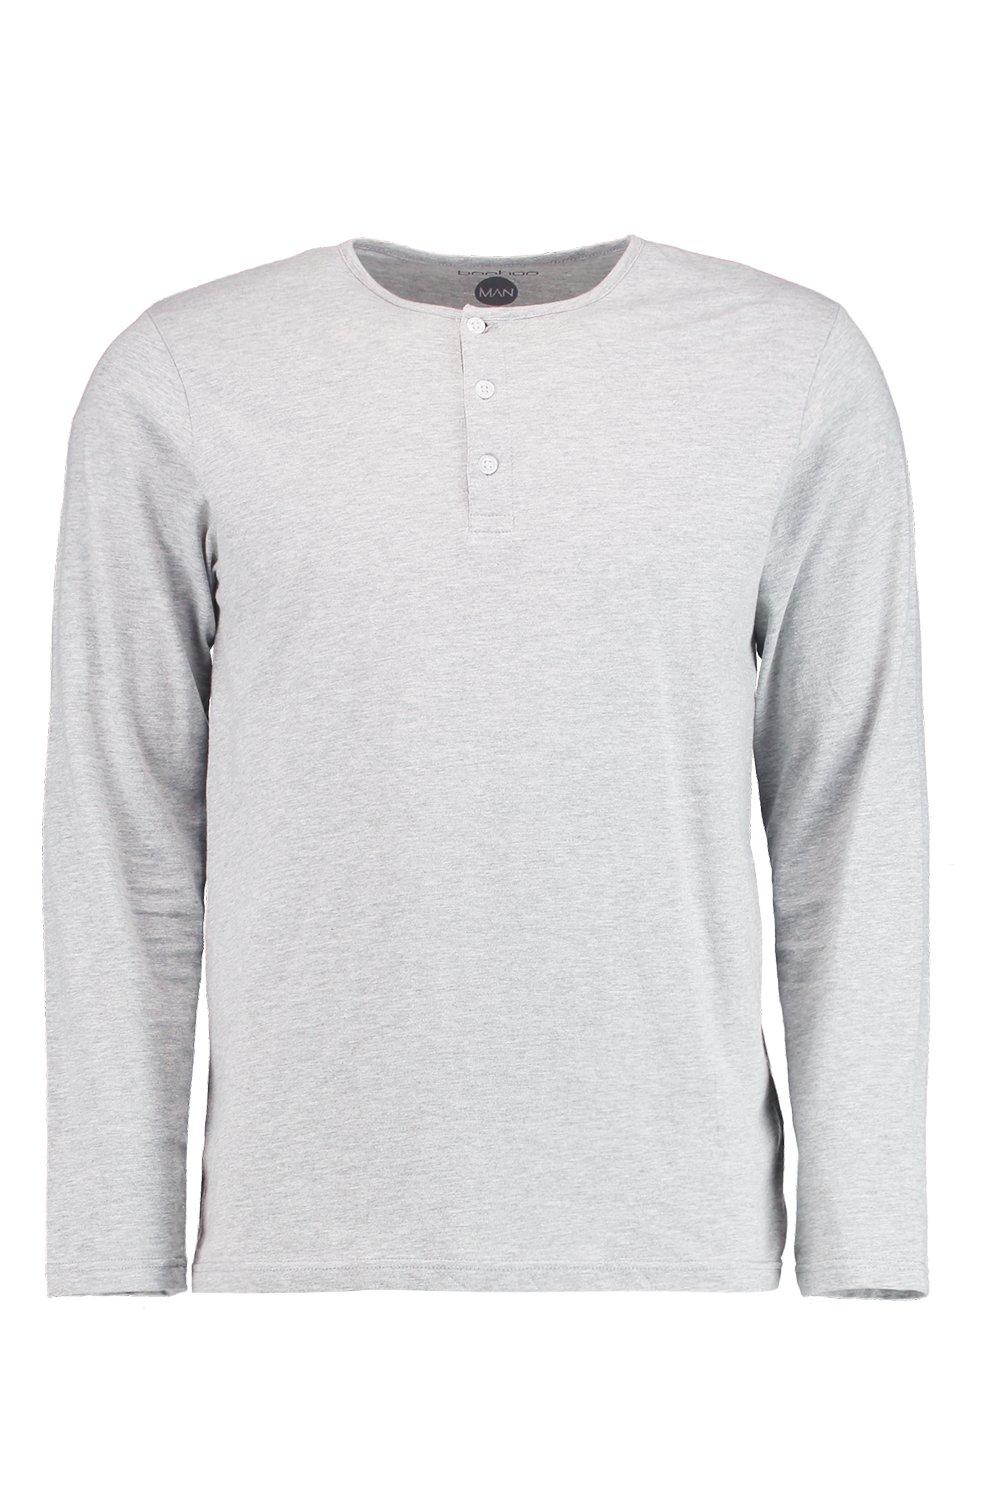 Mens Alpine Lakes long sleeve thermal waffle knit Henley with a crew neck, 3 button closure and a regular fit. % Polyester. Machine wash. Mens Arrow Hamilton long sleeve button down woven sport shirt with a chest pocket, wrinkle free material, regualr fit and a button detail collar. 55% Cotton, 45% Polyester. Mens Shirts & Tops.